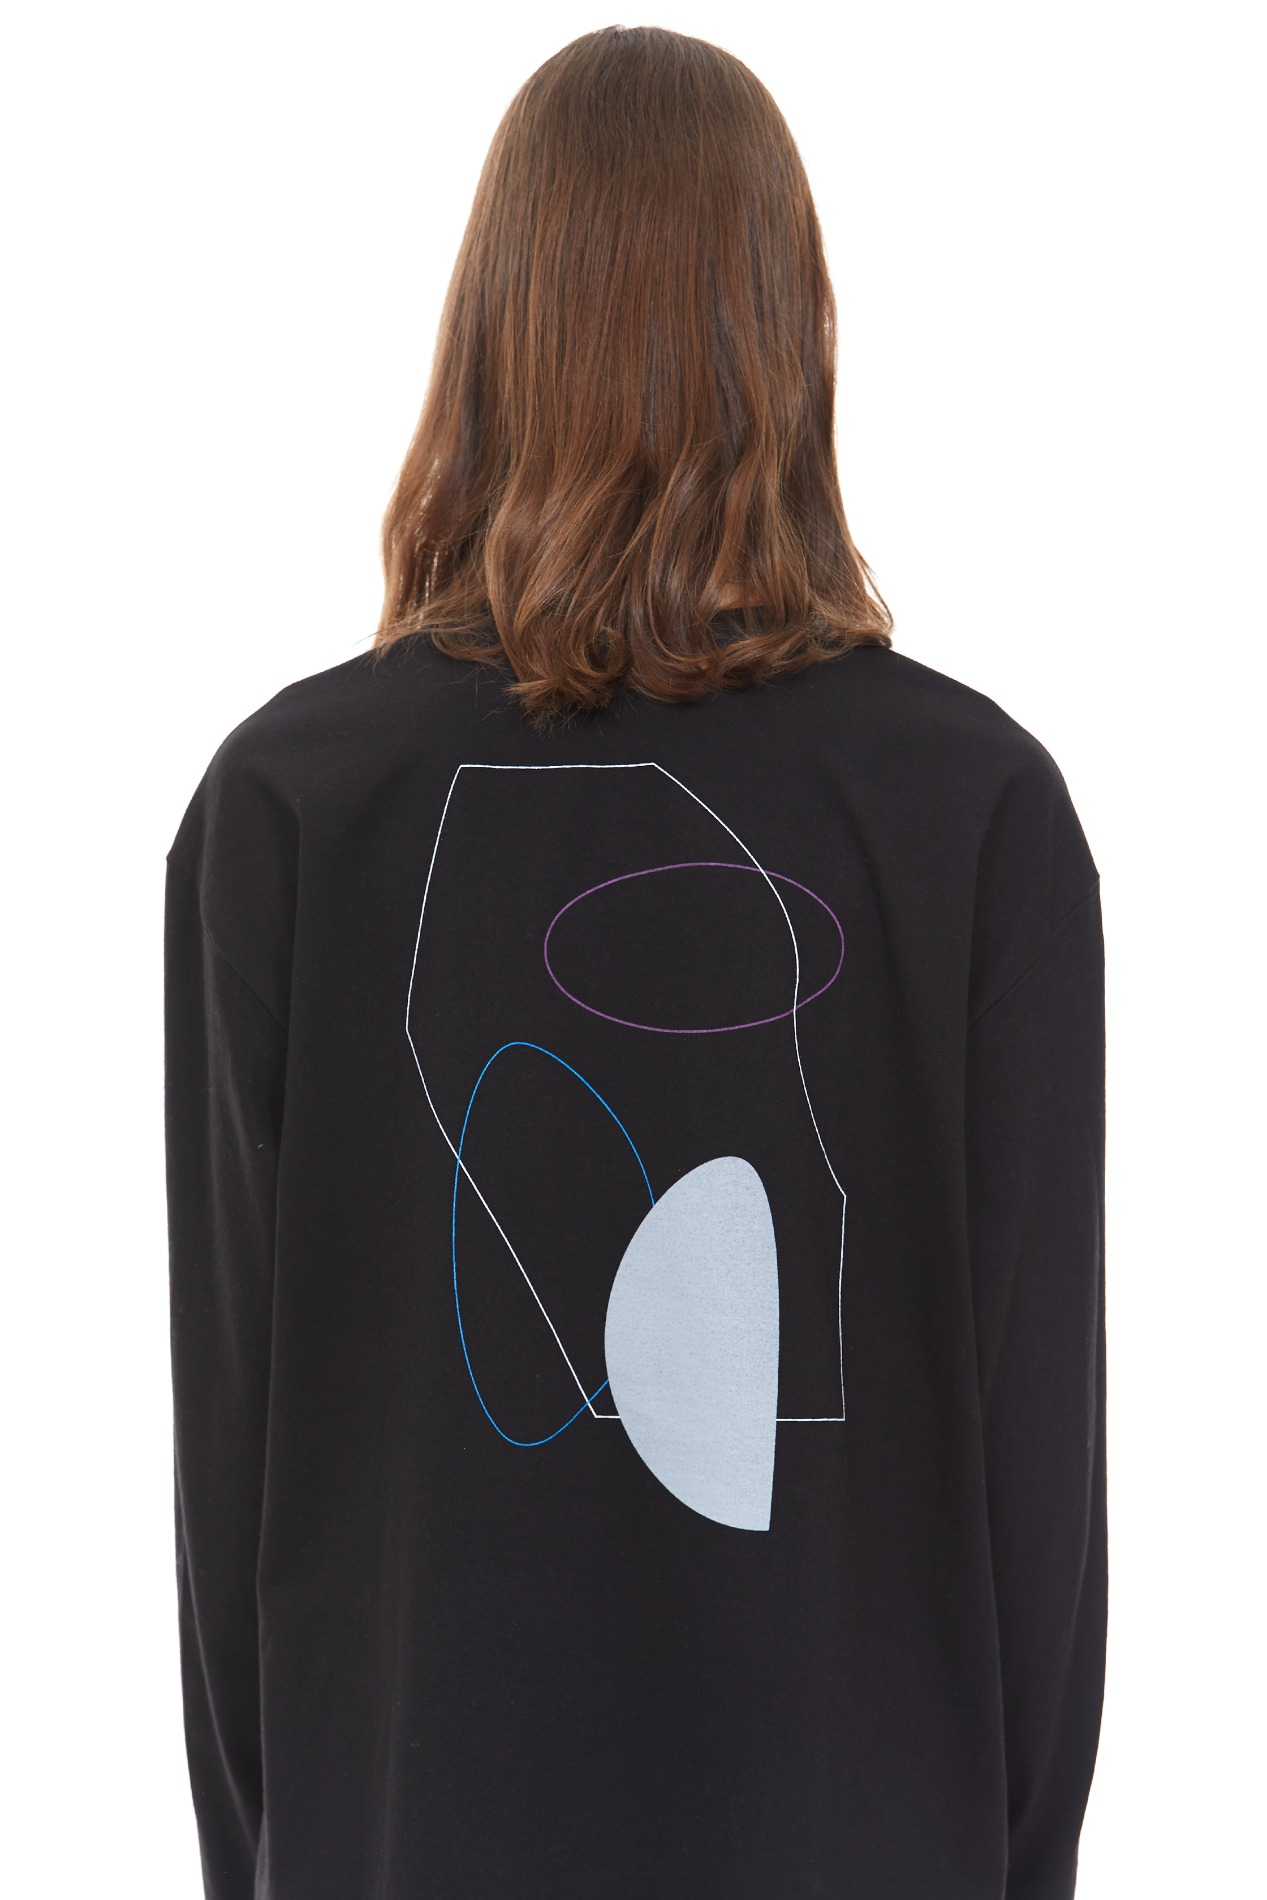 PAINTING ARCHIVE035 LONG-SLEEVE(Black)